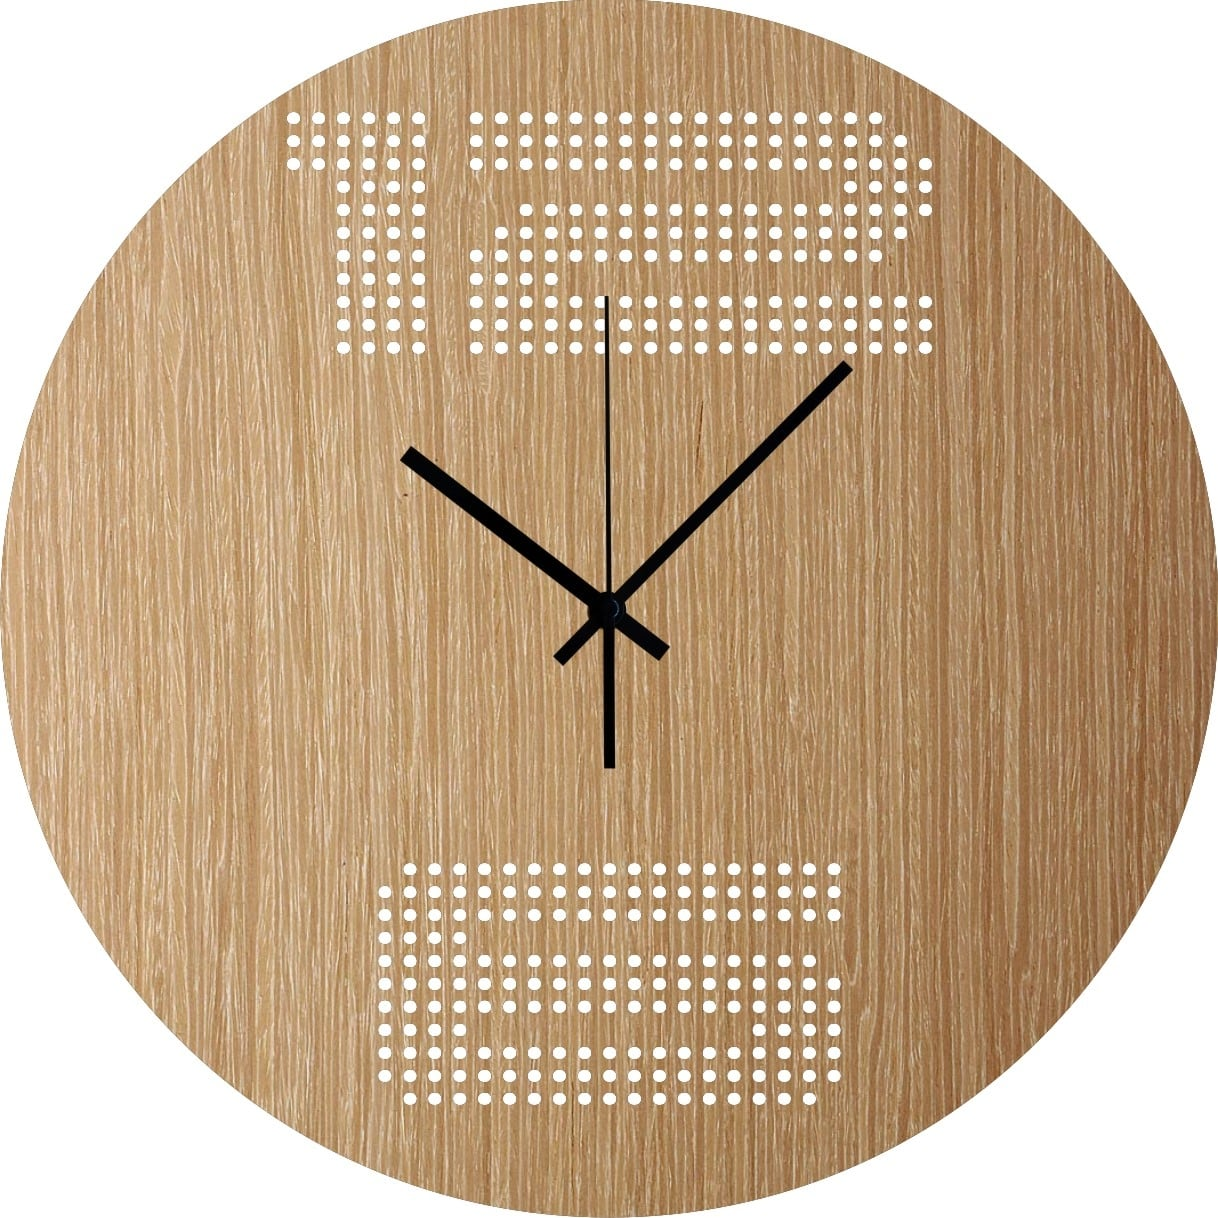 Scandinavian wood wall clock for interior decoration